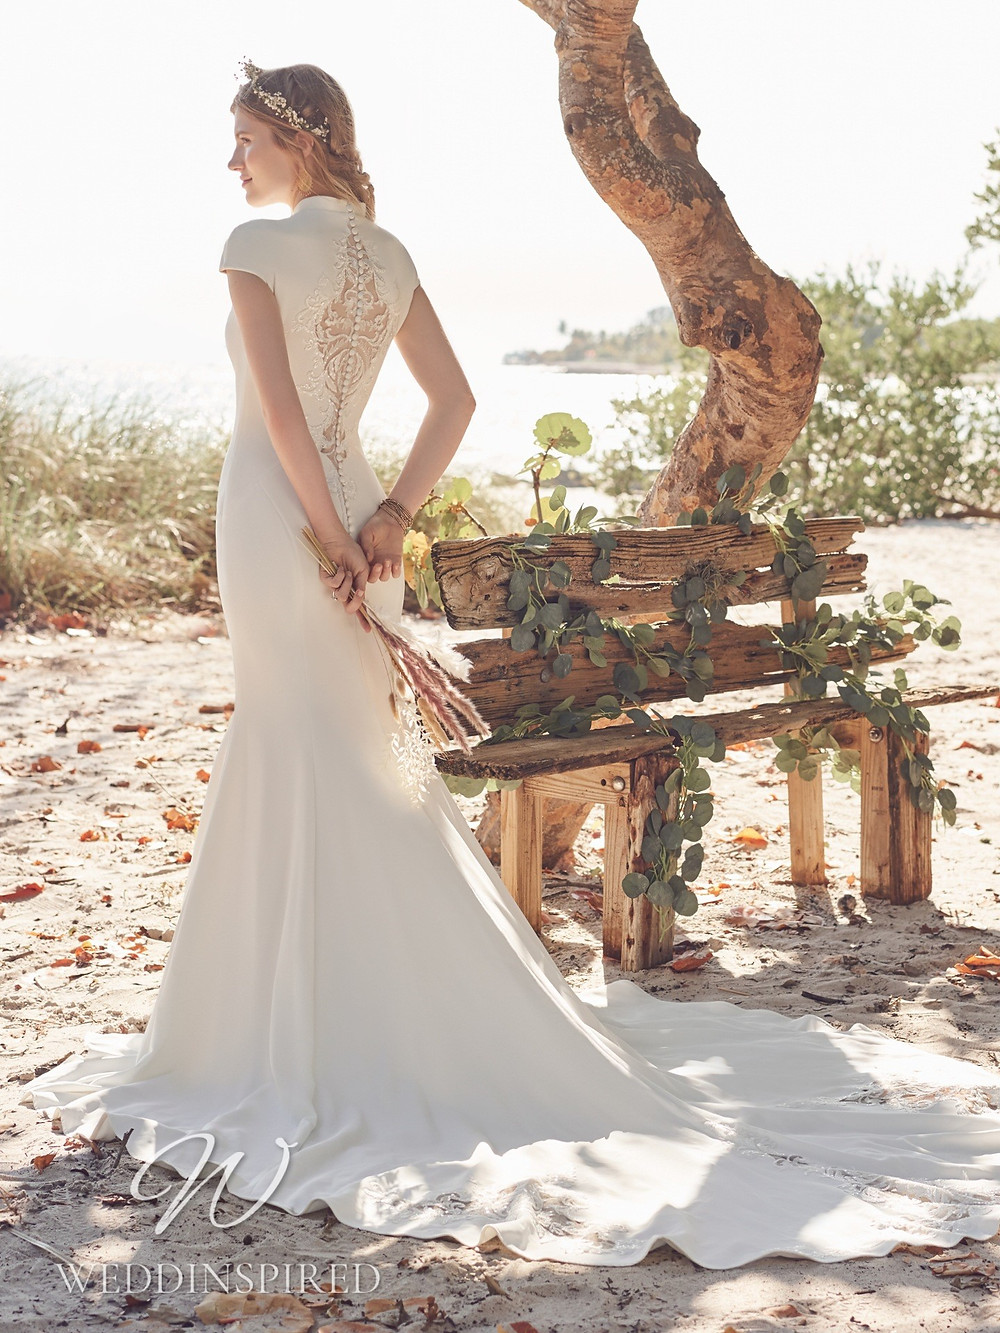 A Rebecca Ingram 2021 simple ivory mermaid wedding dress with a lace back